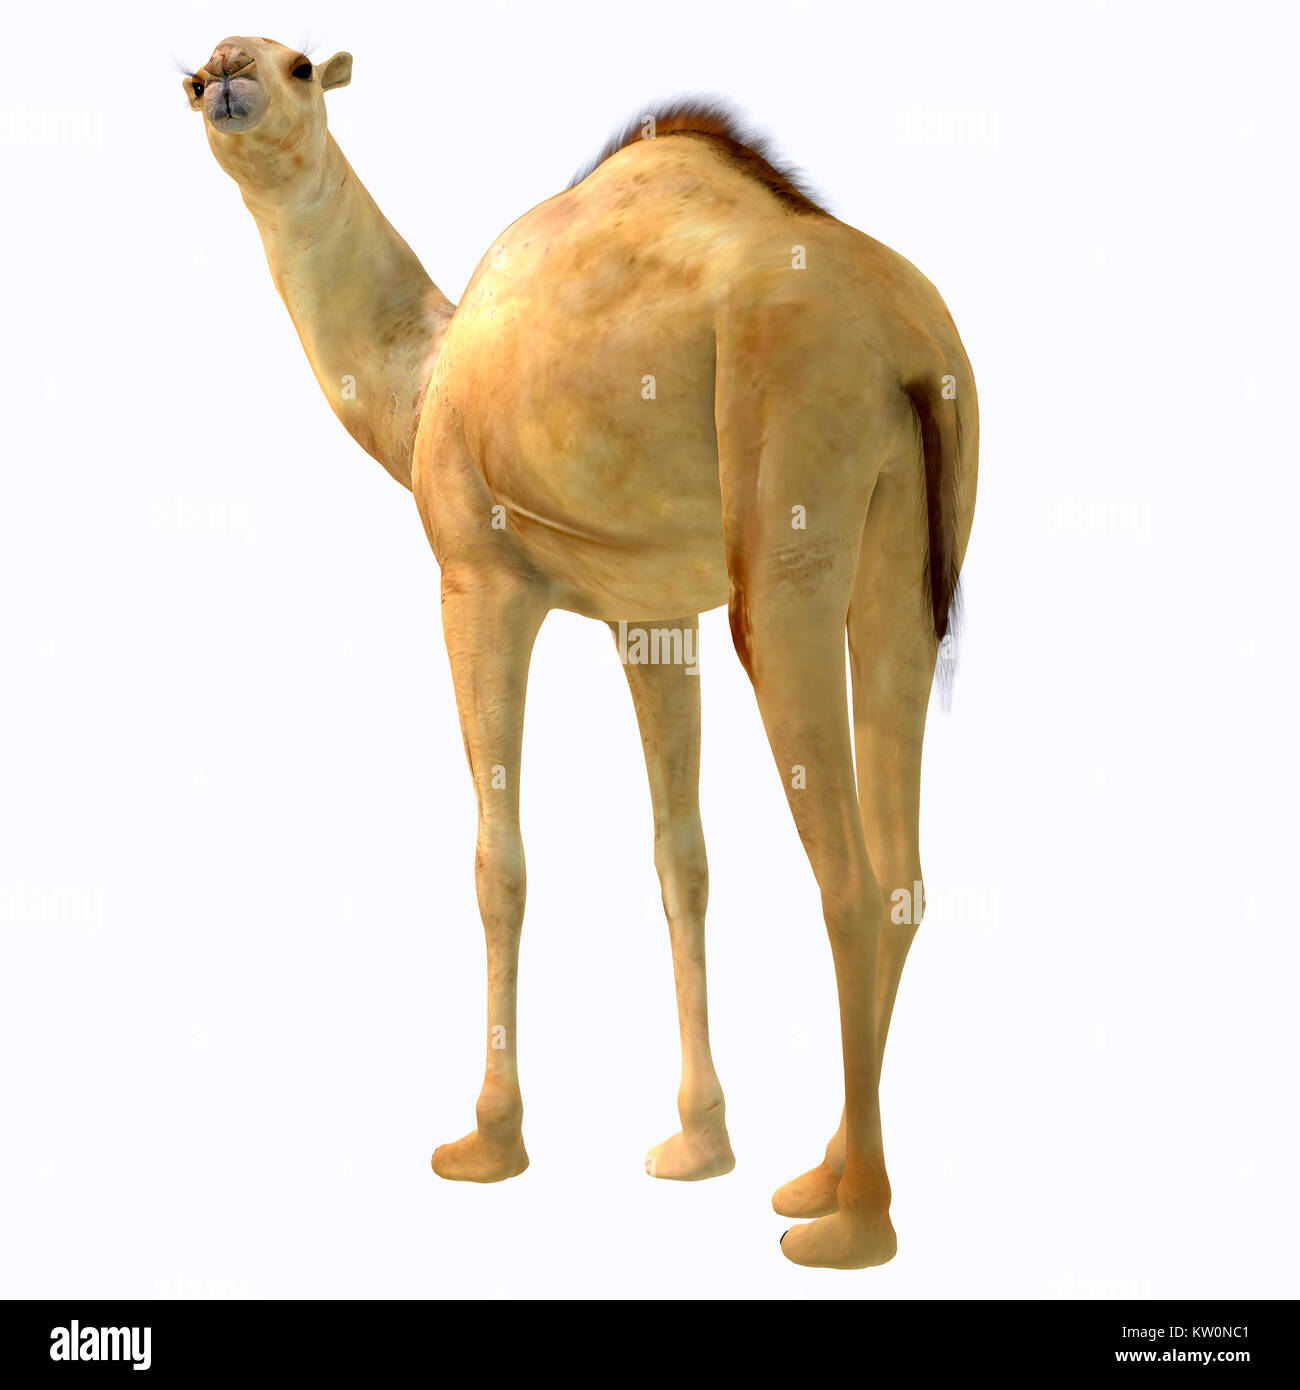 Camelops hesternus Tail - Camelops was a camel-type herbivorous animal that lived in North America during the Pleistocene - Stock Image